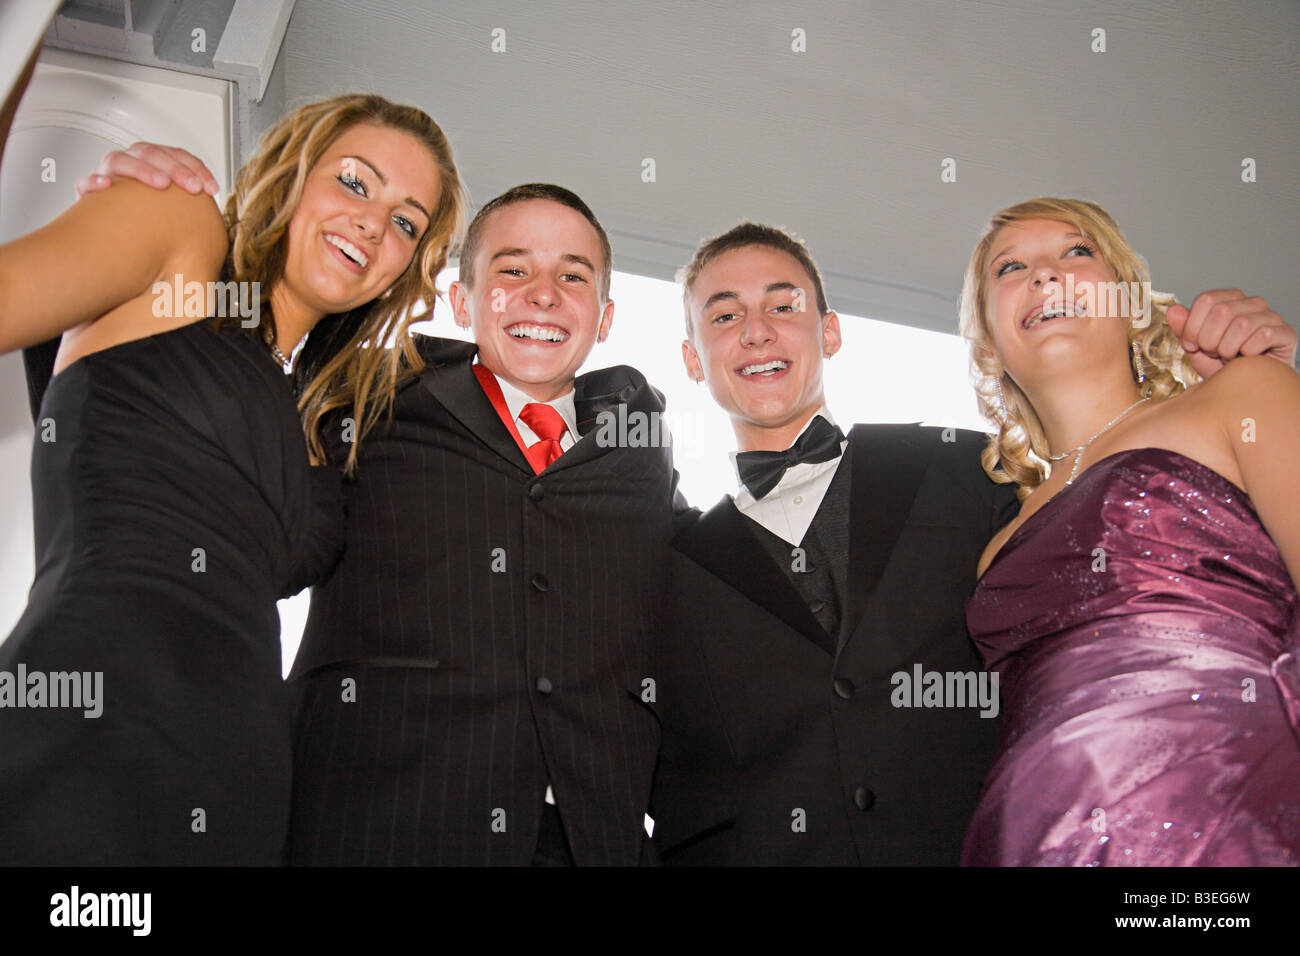 Teenagers ready for homecoming - Stock Image